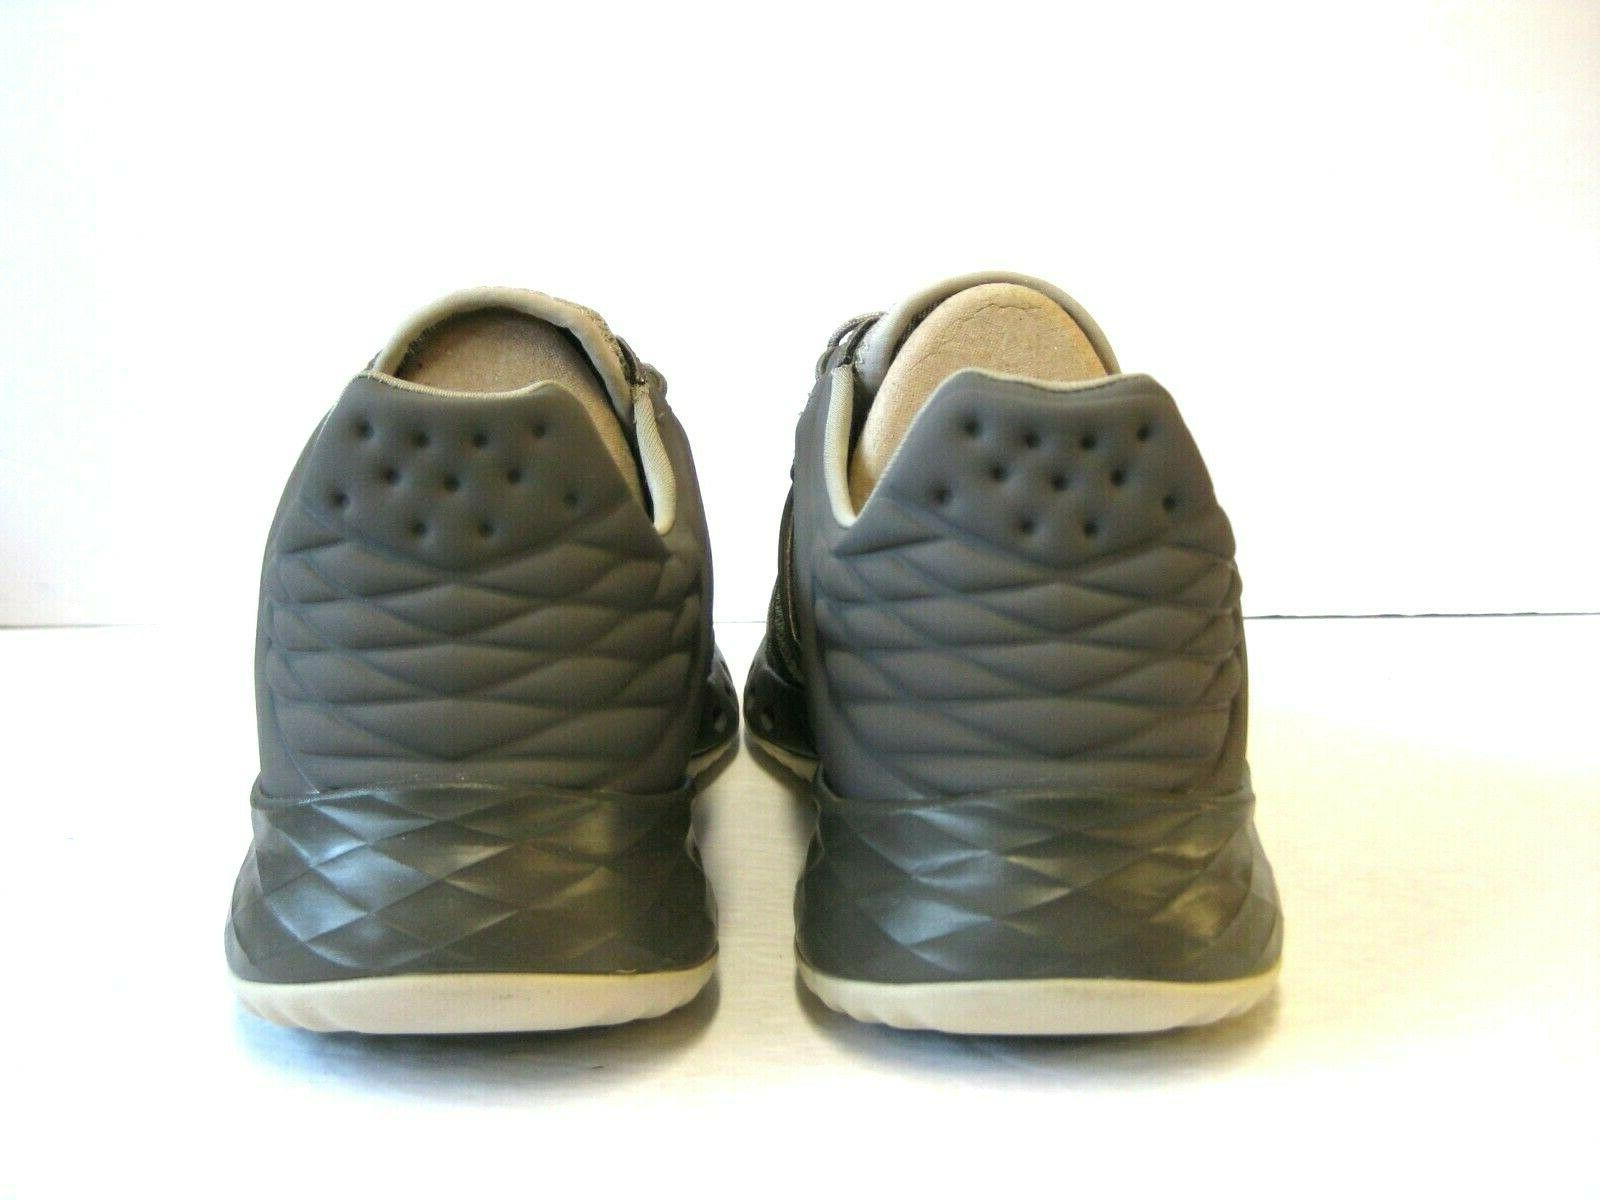 TEVA WATER SHOES TAUPE US 10.5